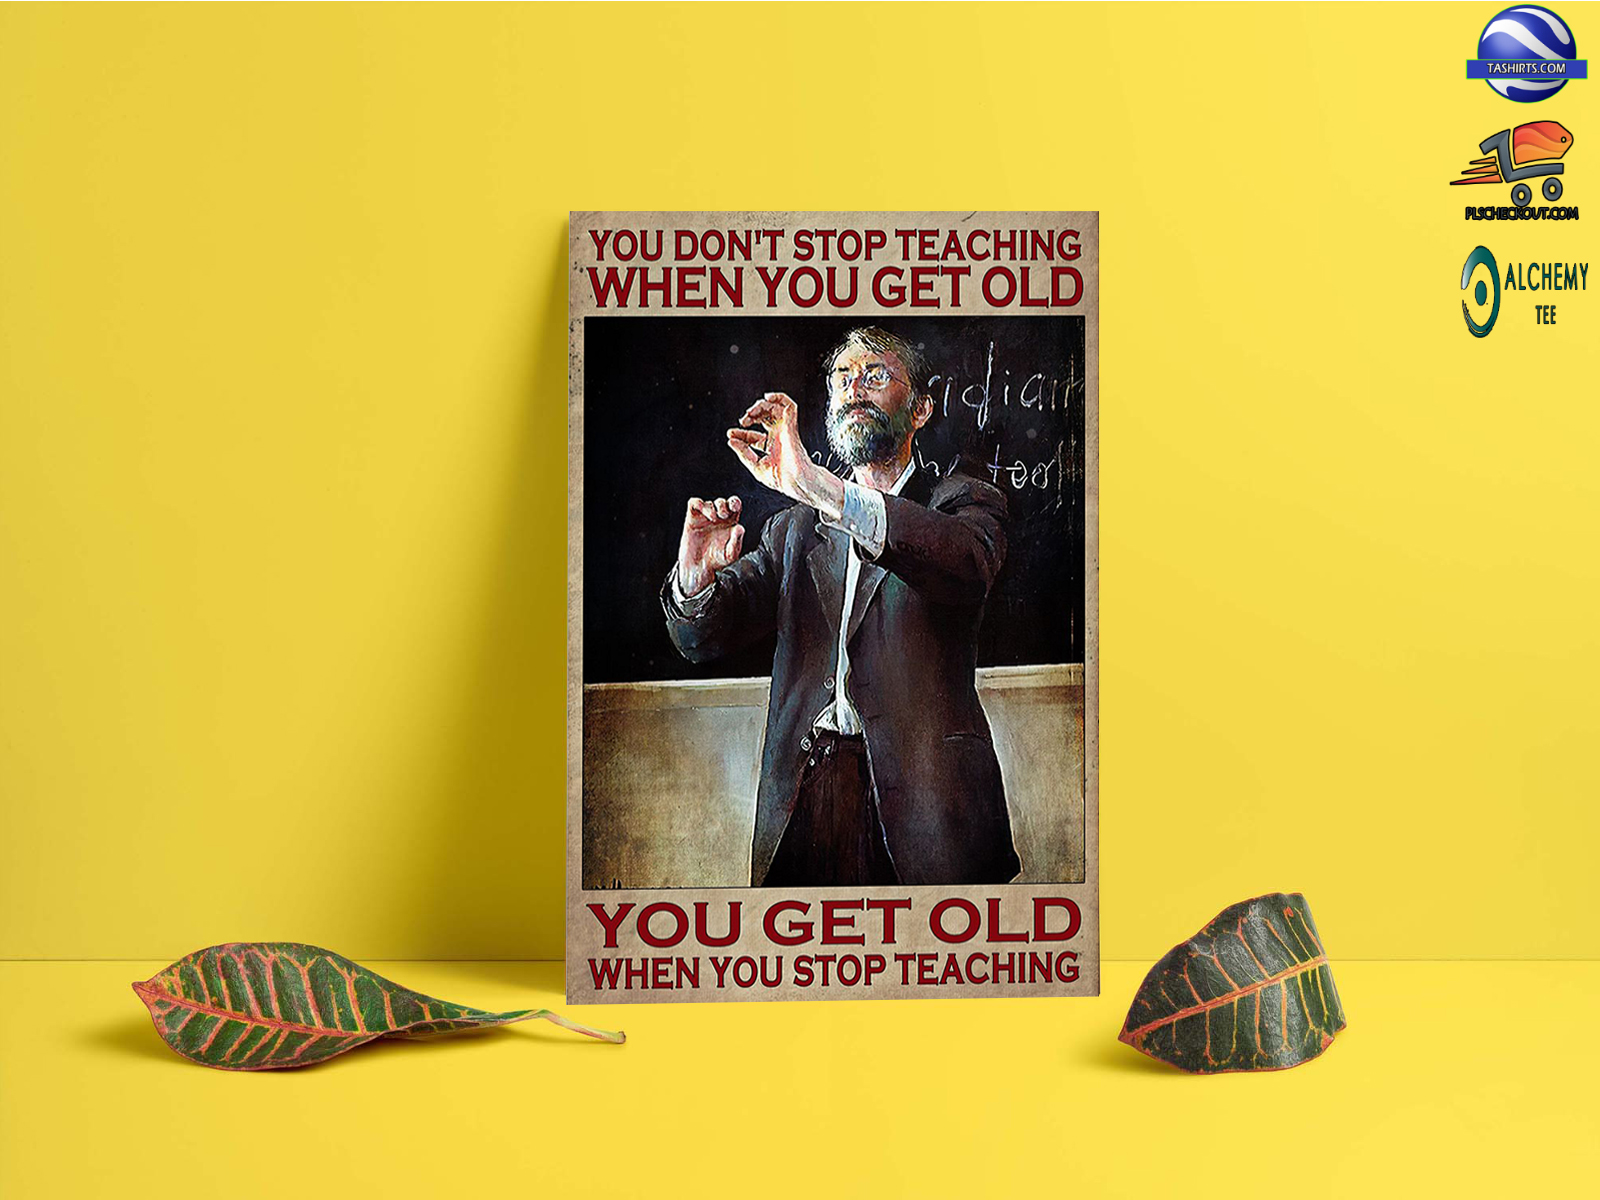 You don't stop teaching when you get old you get old when you stop teaching poster